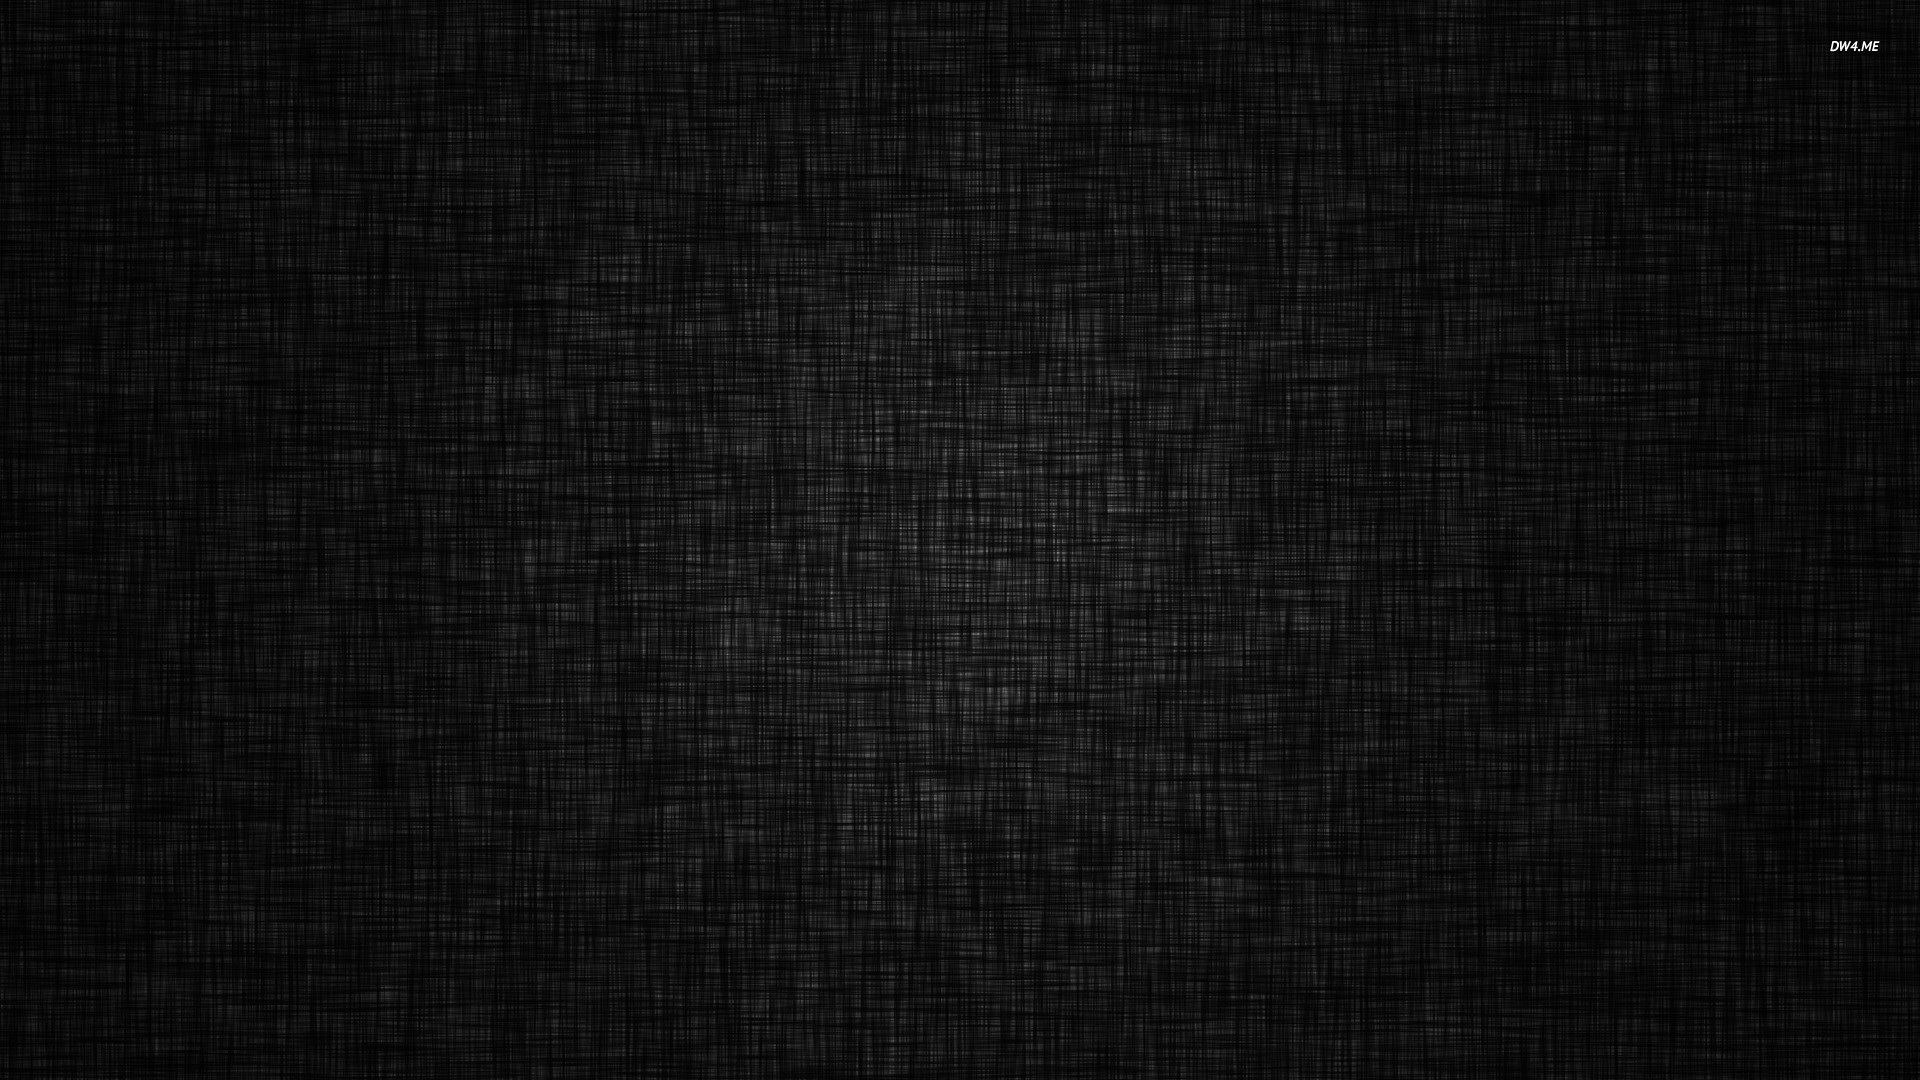 Black metal backgrounds 51 images 1920x1200 index of rwcommonthemesablankthemeimageseditableimages12black grid leather and metal pattern background voltagebd Choice Image